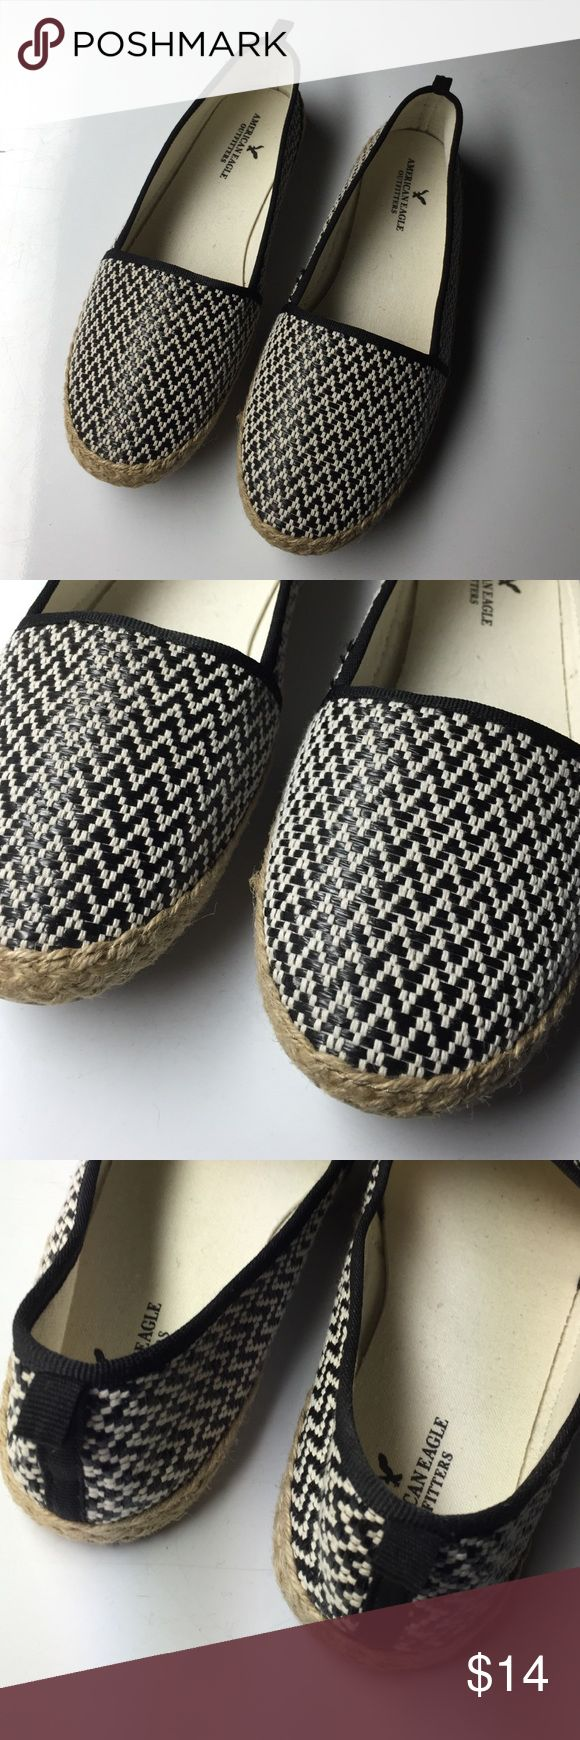 black and white espadrille flats adorable and NWOT. black and white. true to size. 20% off all bundles. American Eagle Outfitters Shoes Flats & Loafers